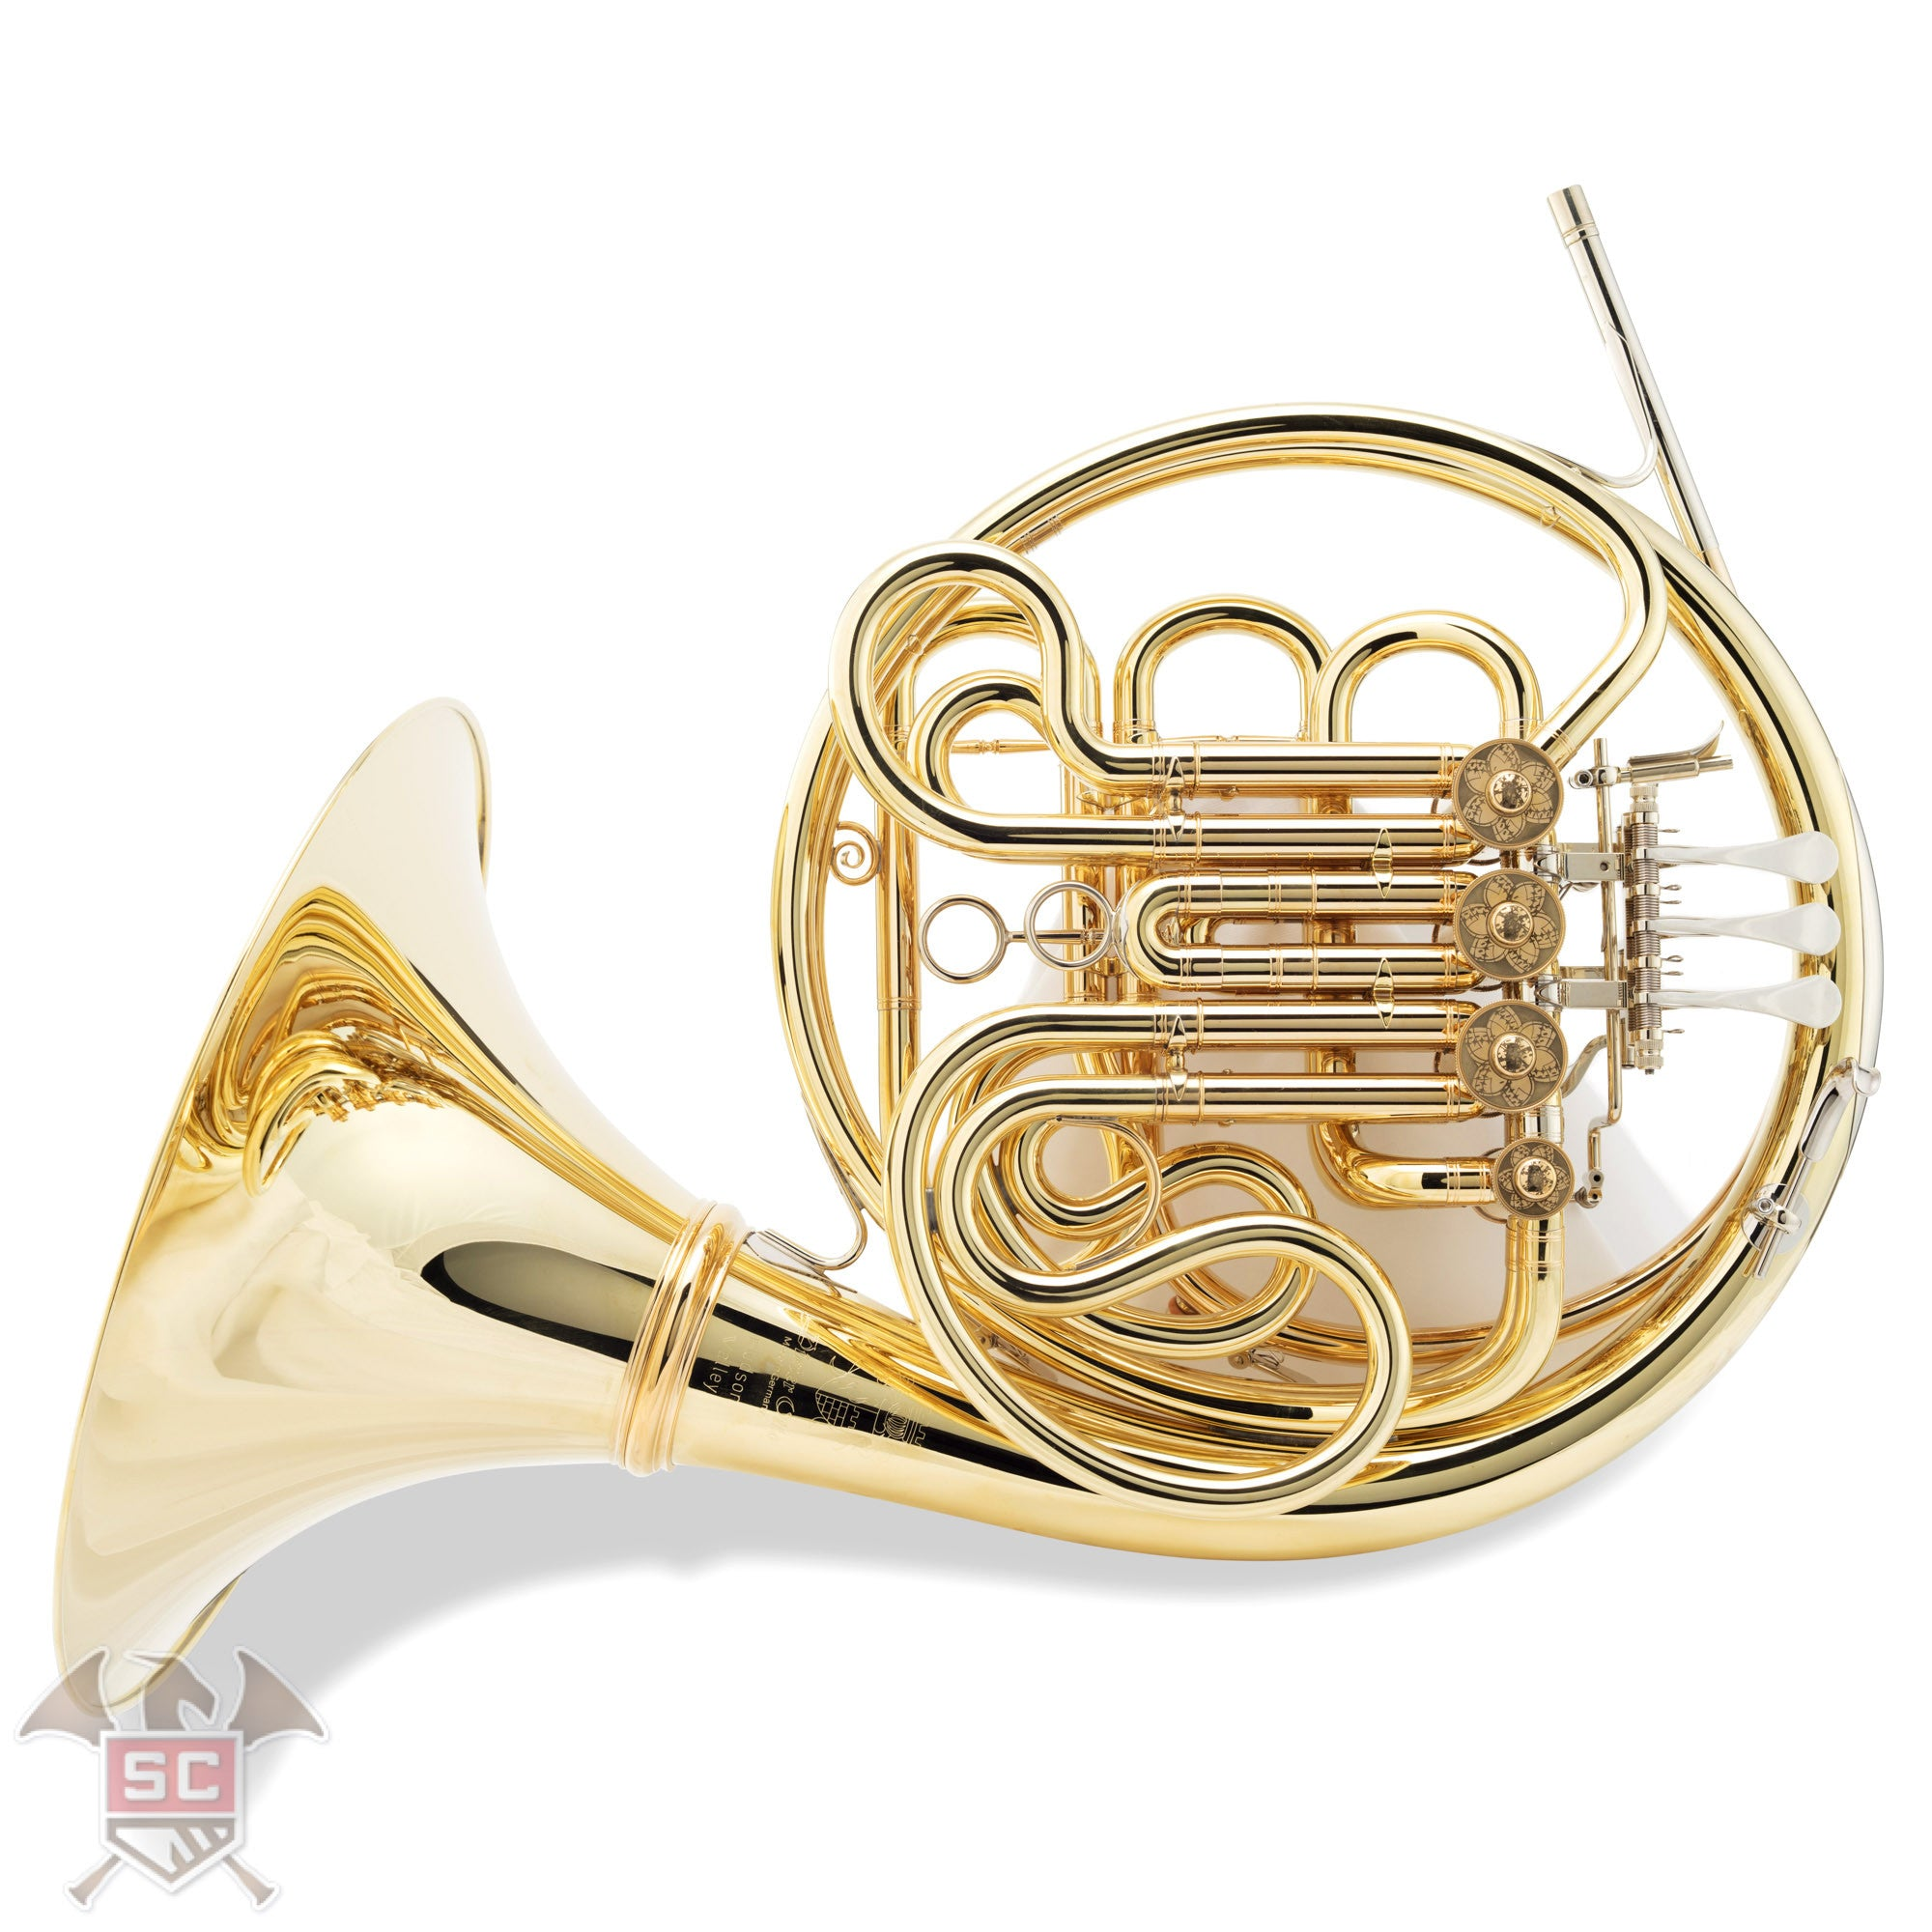 "Siegfried's Call Custom ""Hudson Valley"" Model Dieter Otto Double French Horn"